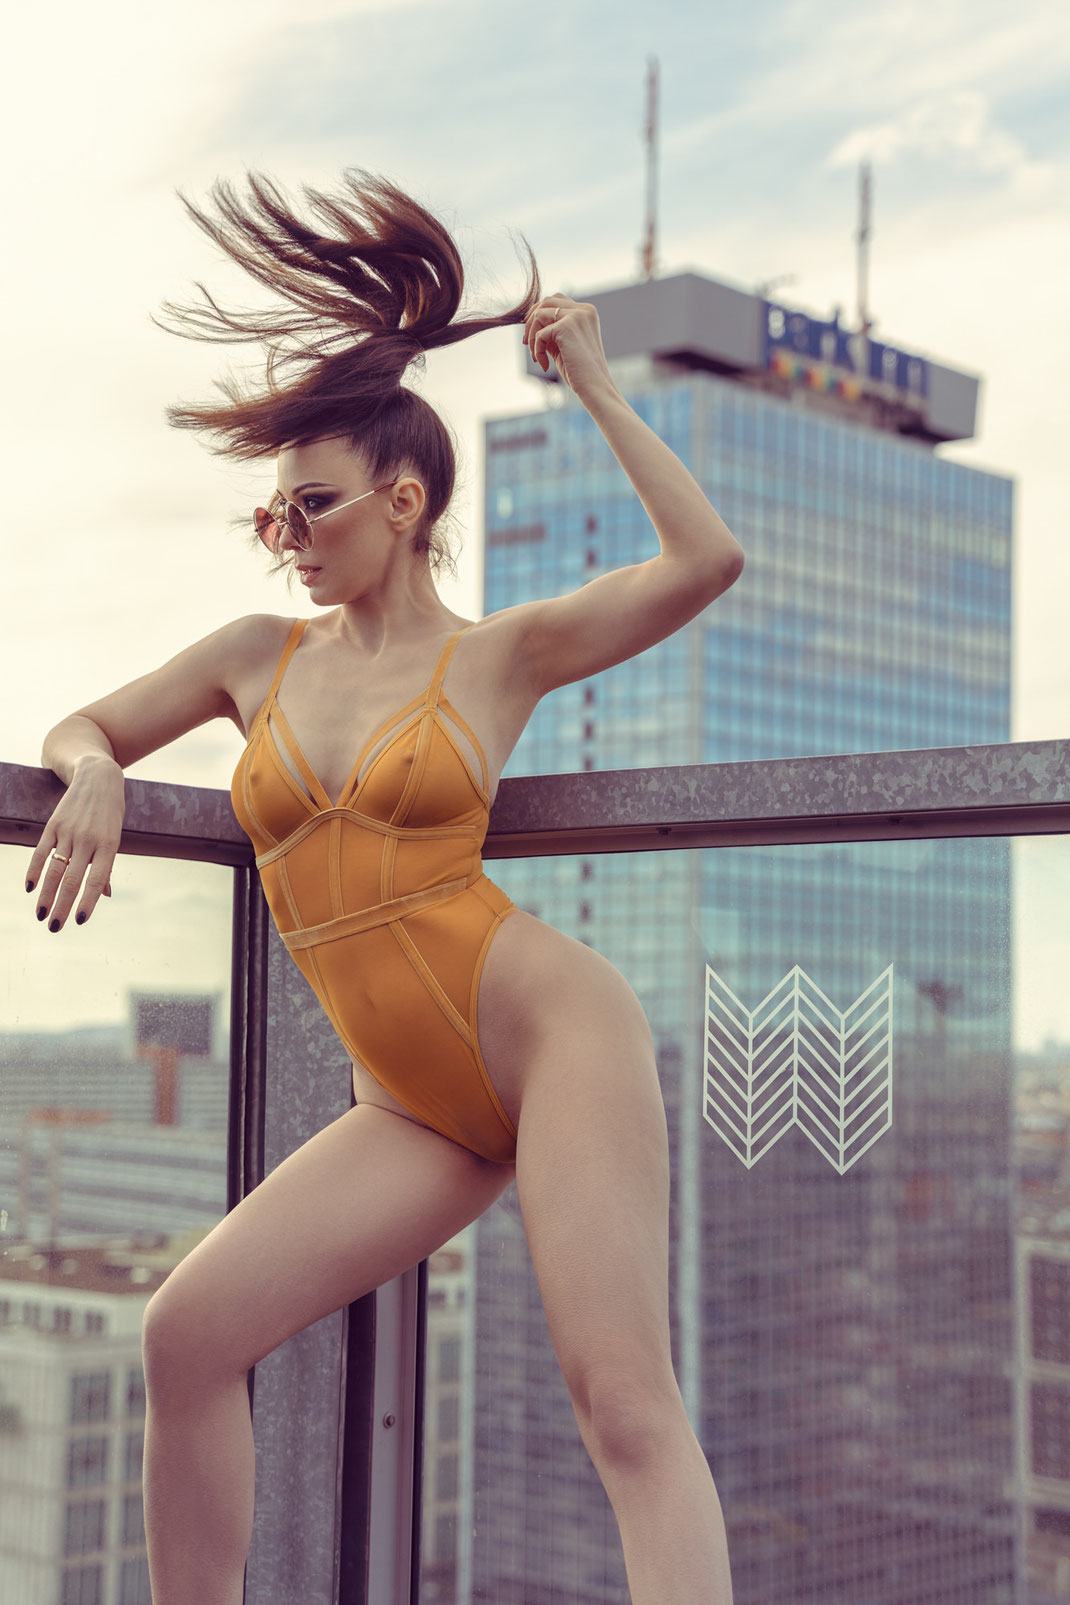 Berlin Breeze - Angélique - Markus Hertzsch - Model - Girl - Portrait - Body - Fitness - Pose - Hair - Windy - Glasses - Skyscraper